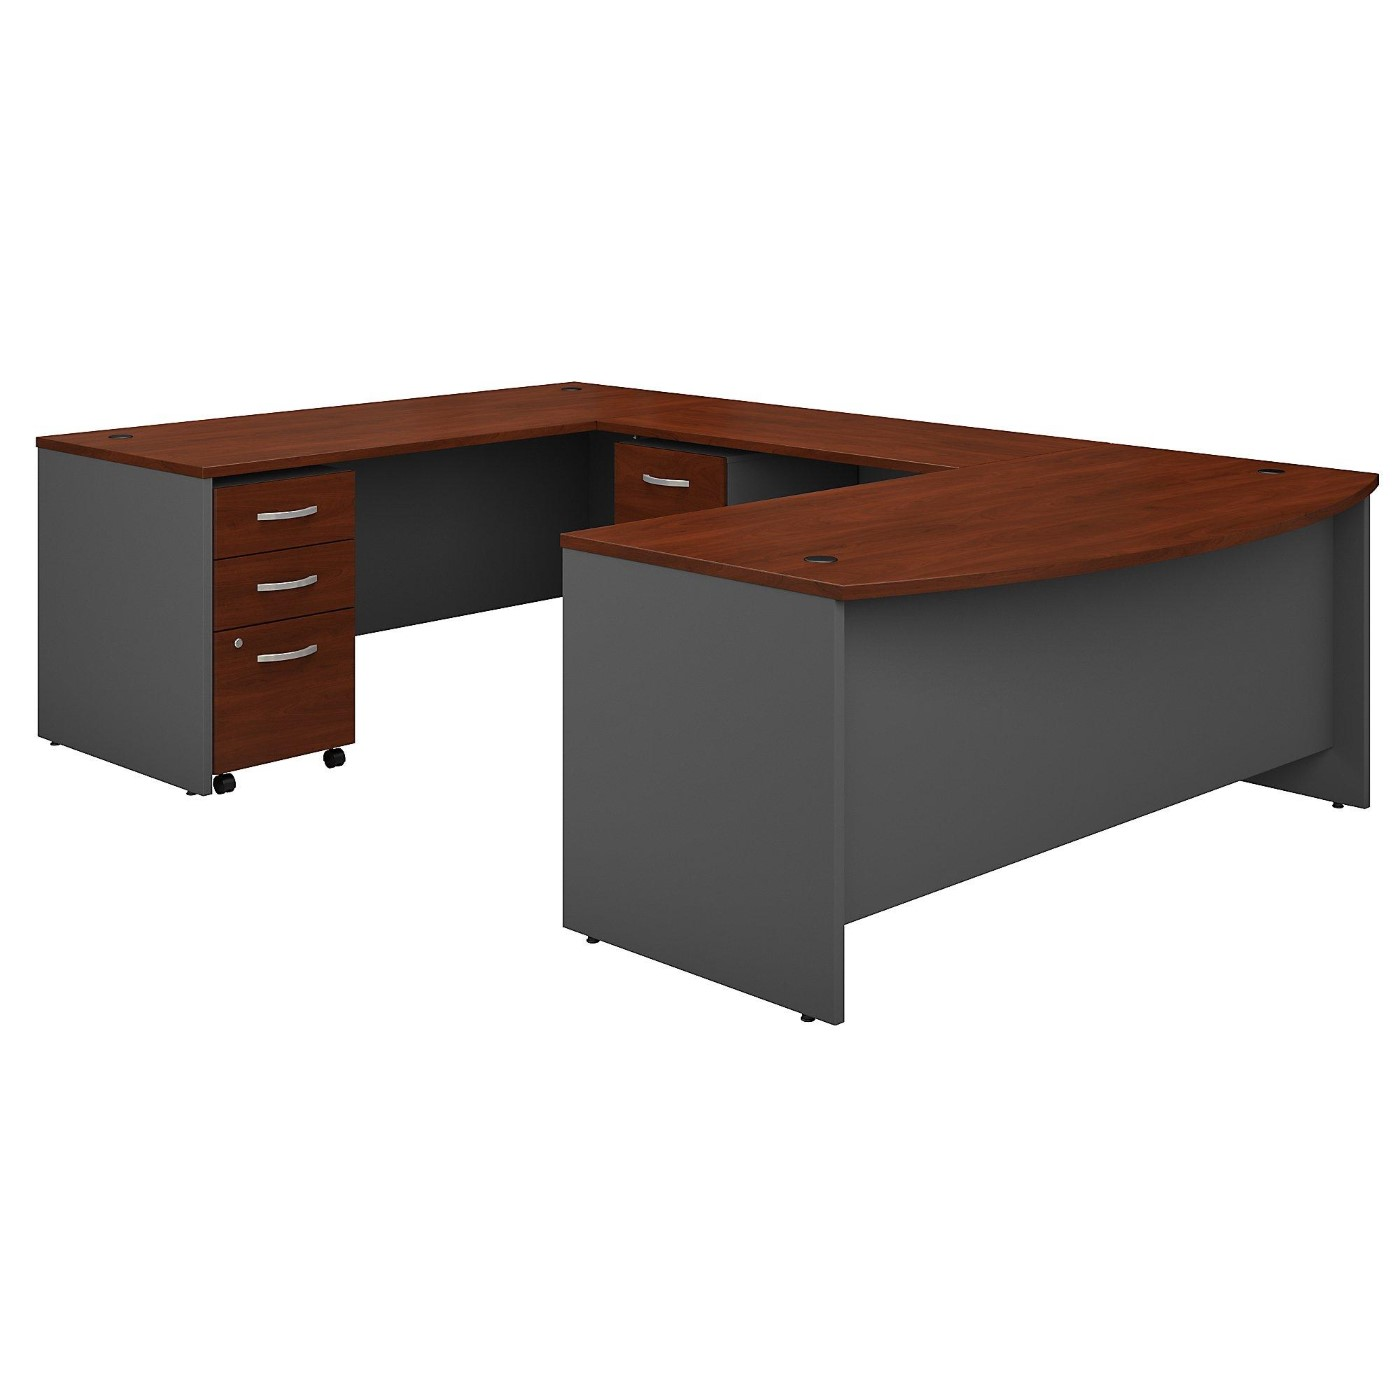 <font color=#c60><b>BUSH BUSINESS FURNITURE SERIES C 72W X 36D BOW FRONT U SHAPED DESK WITH MOBILE FILE CABINETS. FREE SHIPPING</font></b></font>